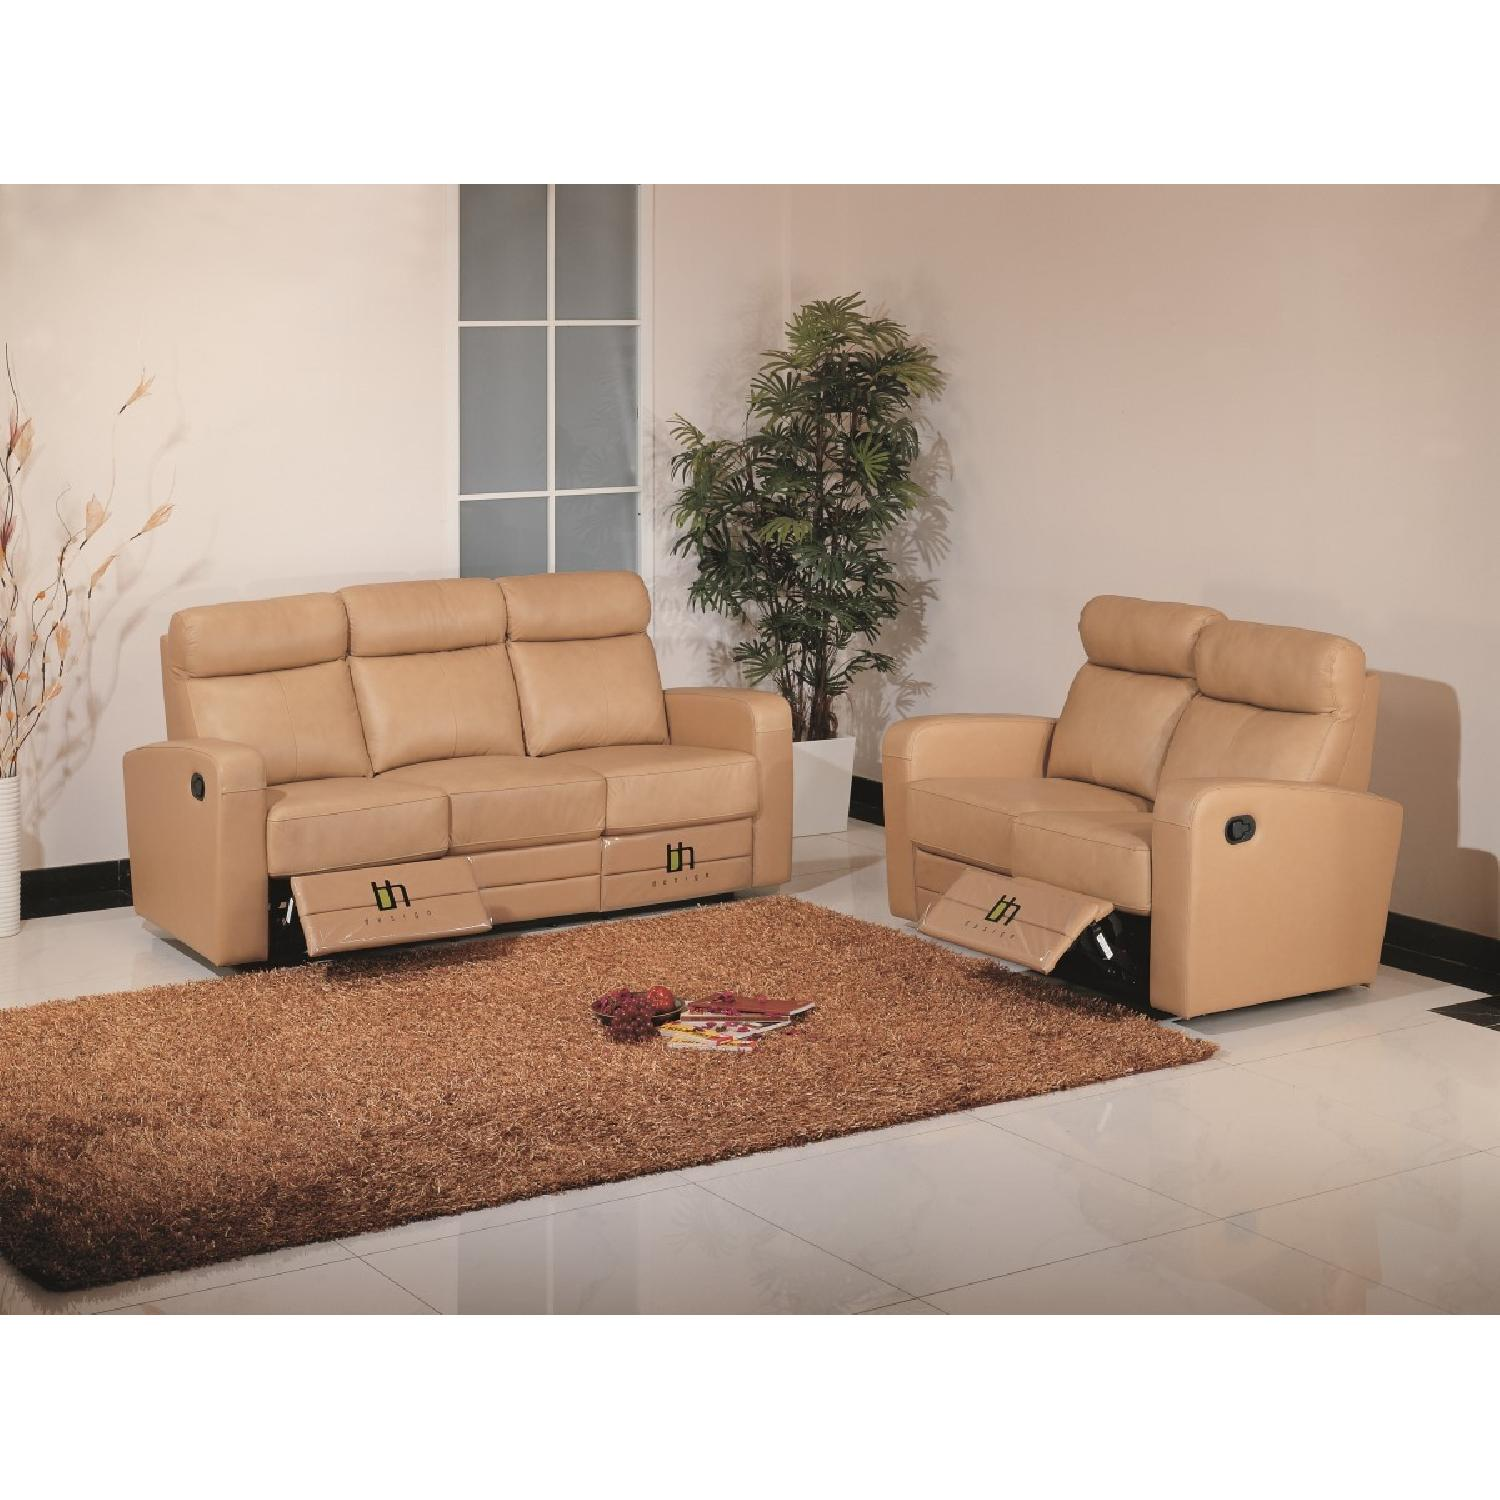 Apartment Size Recliner Sofa In Taupe Color Top Grain